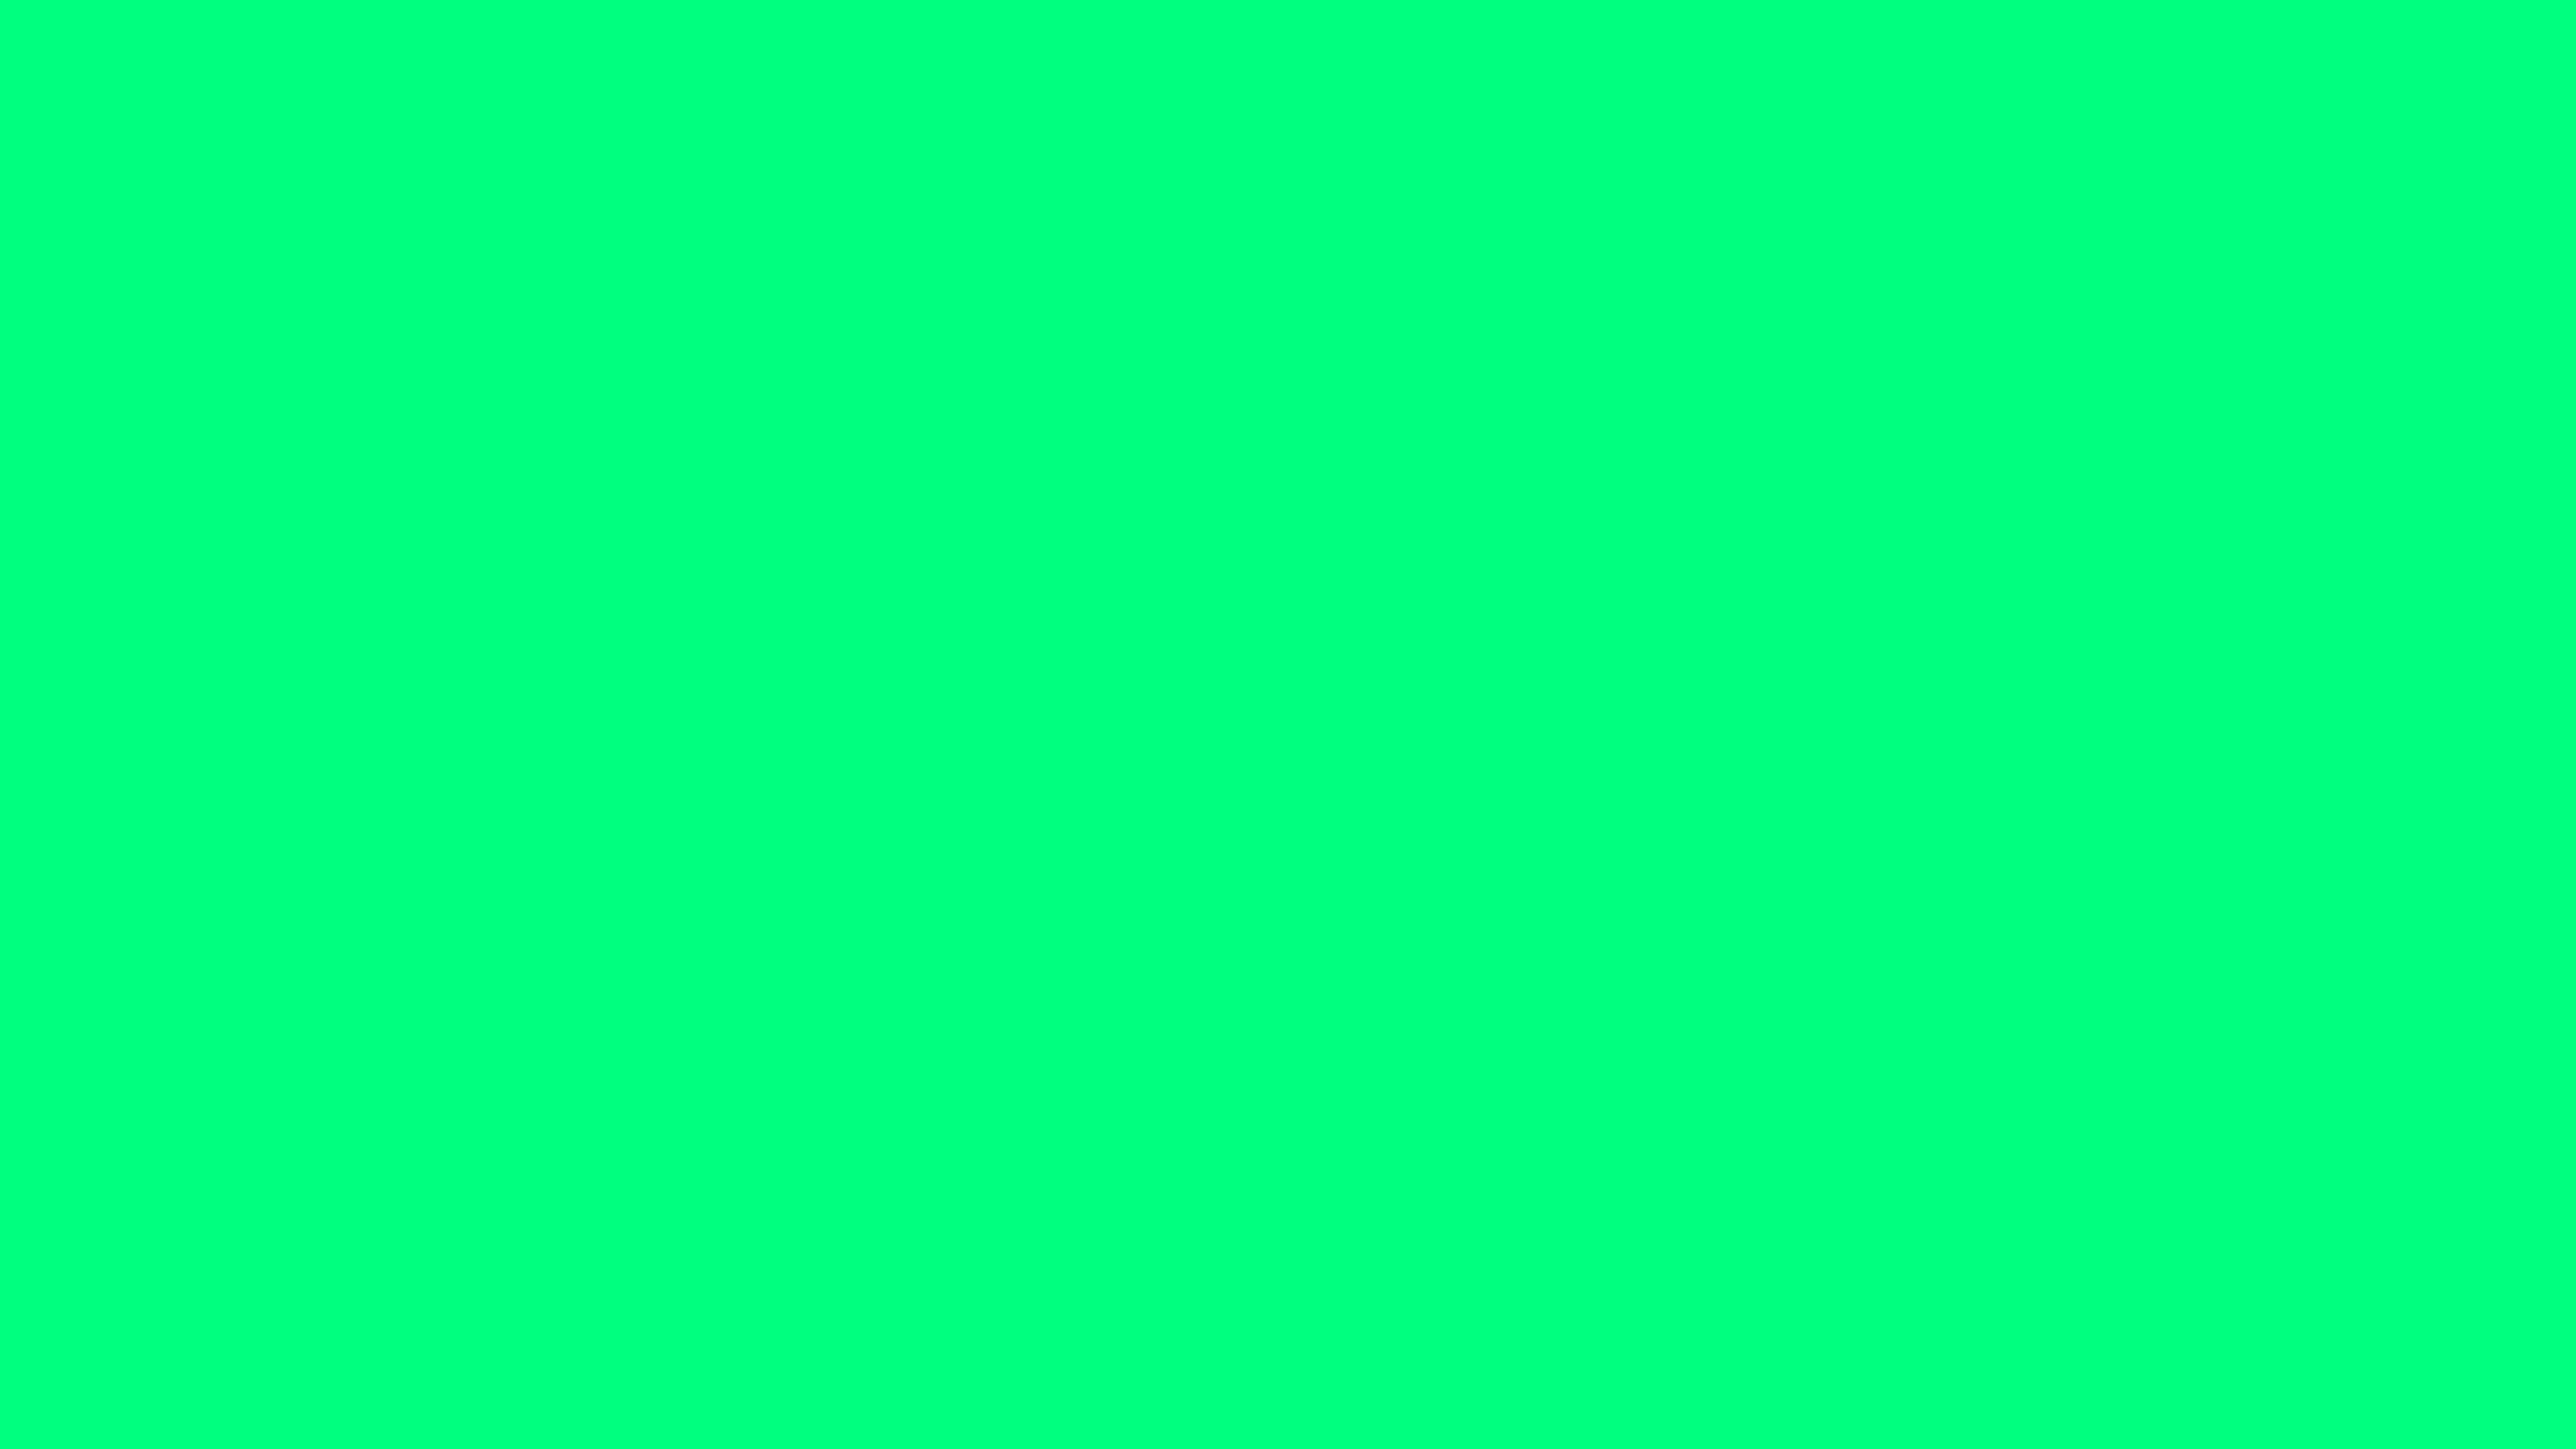 4096x2304 Guppie Green Solid Color Background